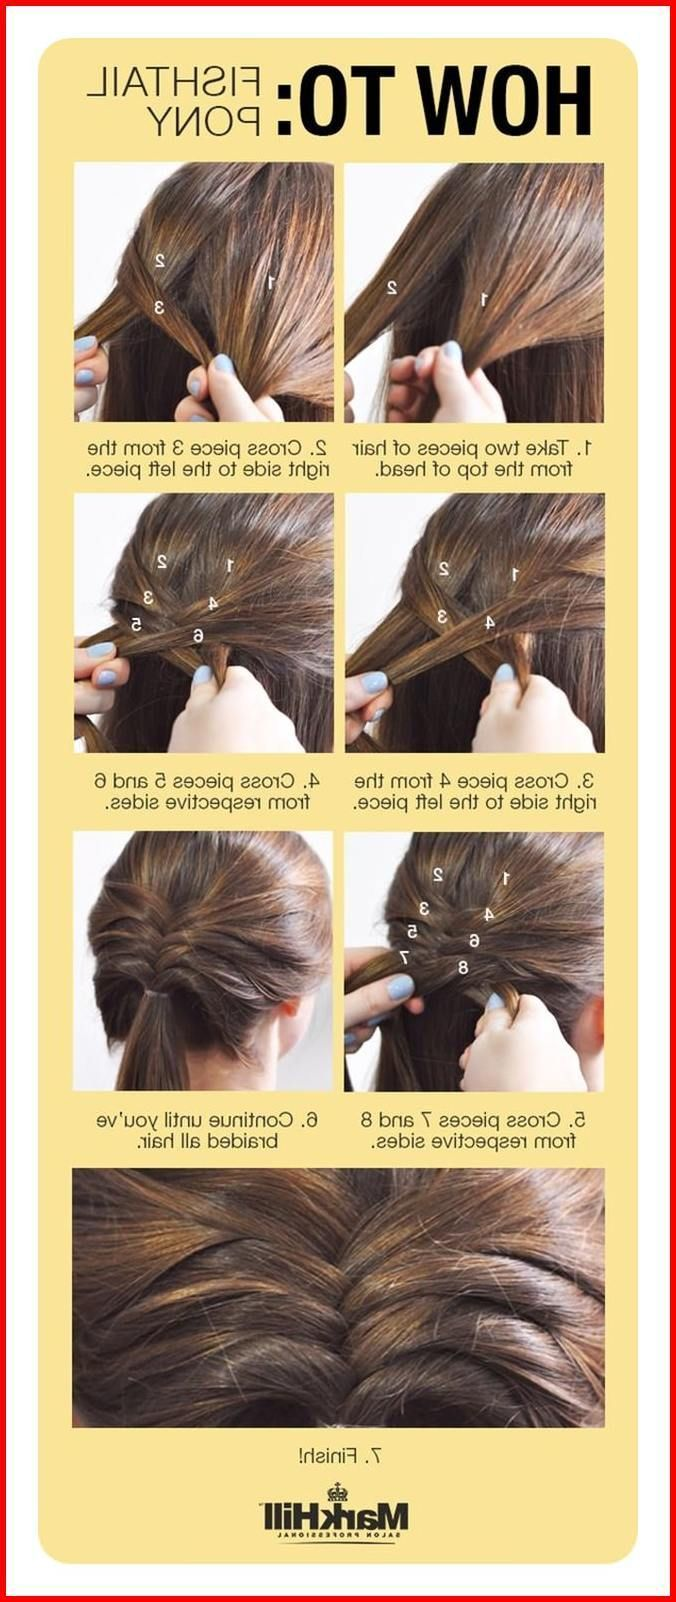 11 Unique Fishtail Braid Hairstyles To Inspire You # fishtail Braids short hair 11 Unique Fishtail Braid Hairstyles To Inspire You # fishtail Braids updo